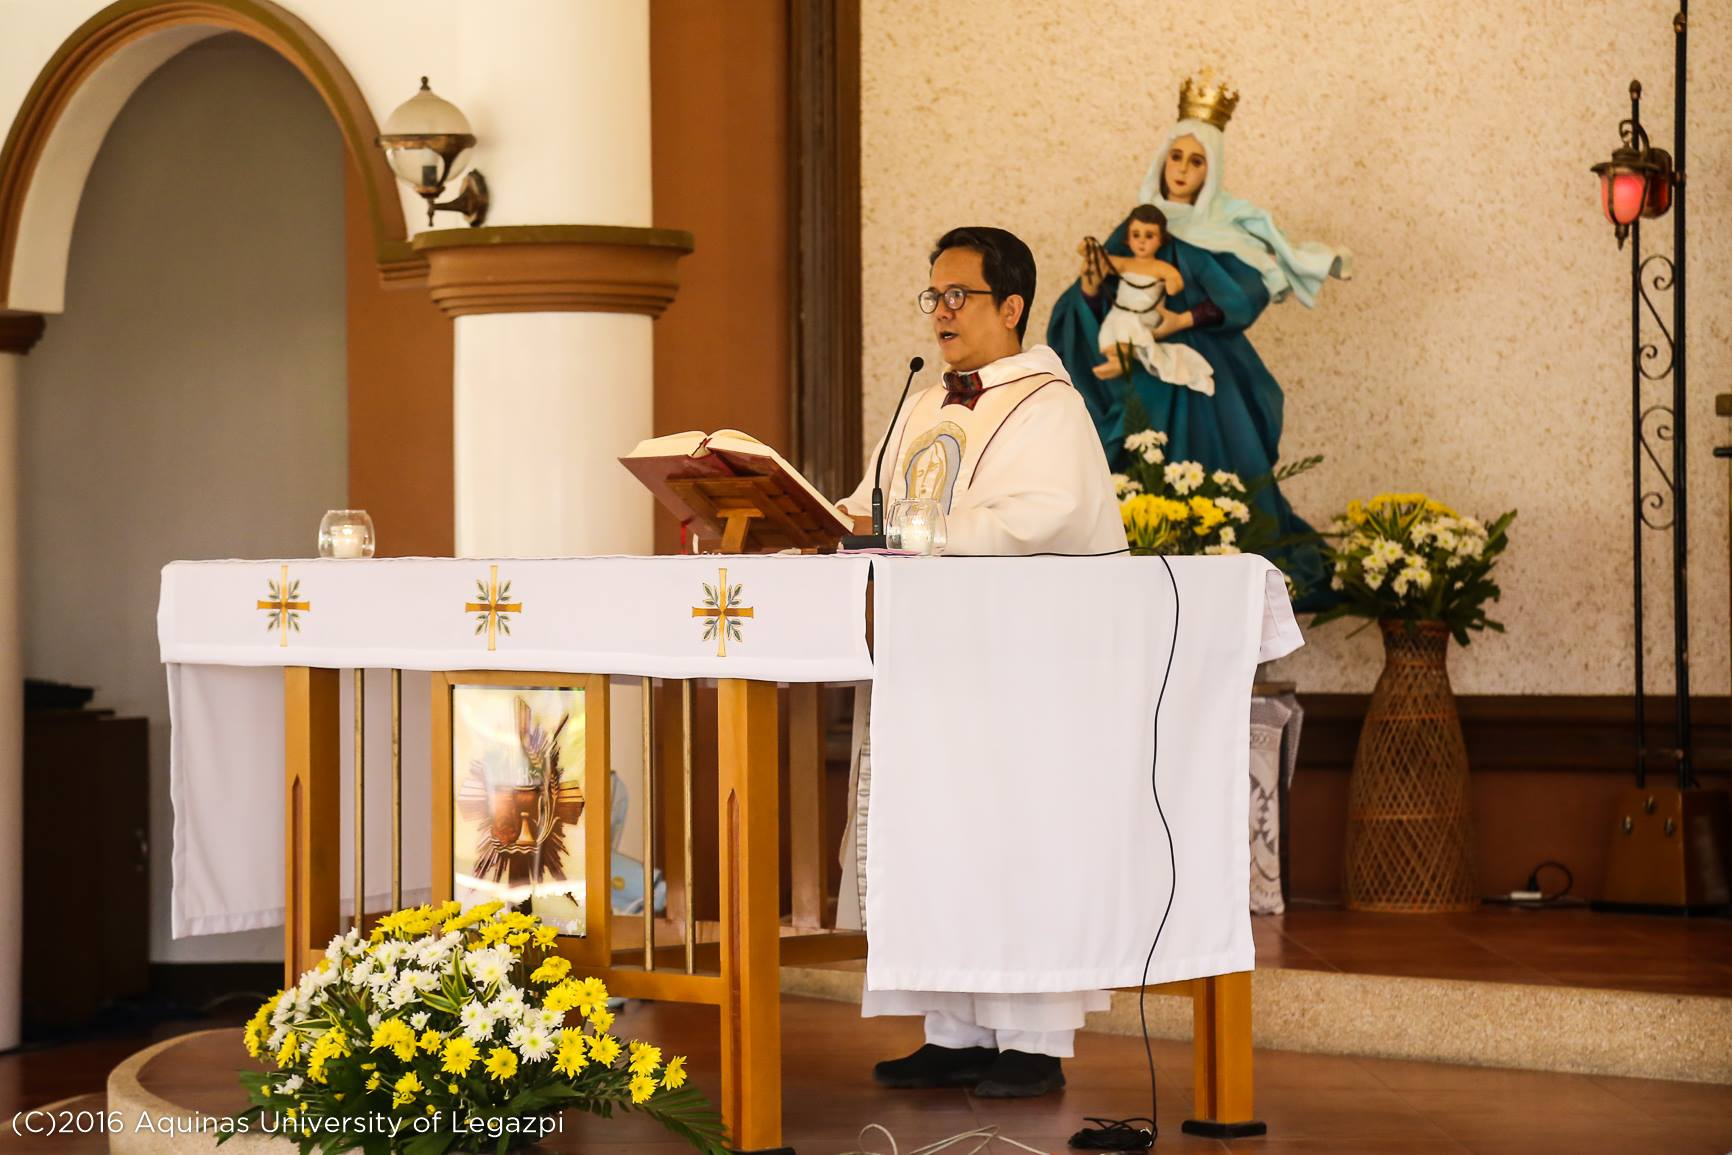 Mass in honor of Blessed Virgin Mary